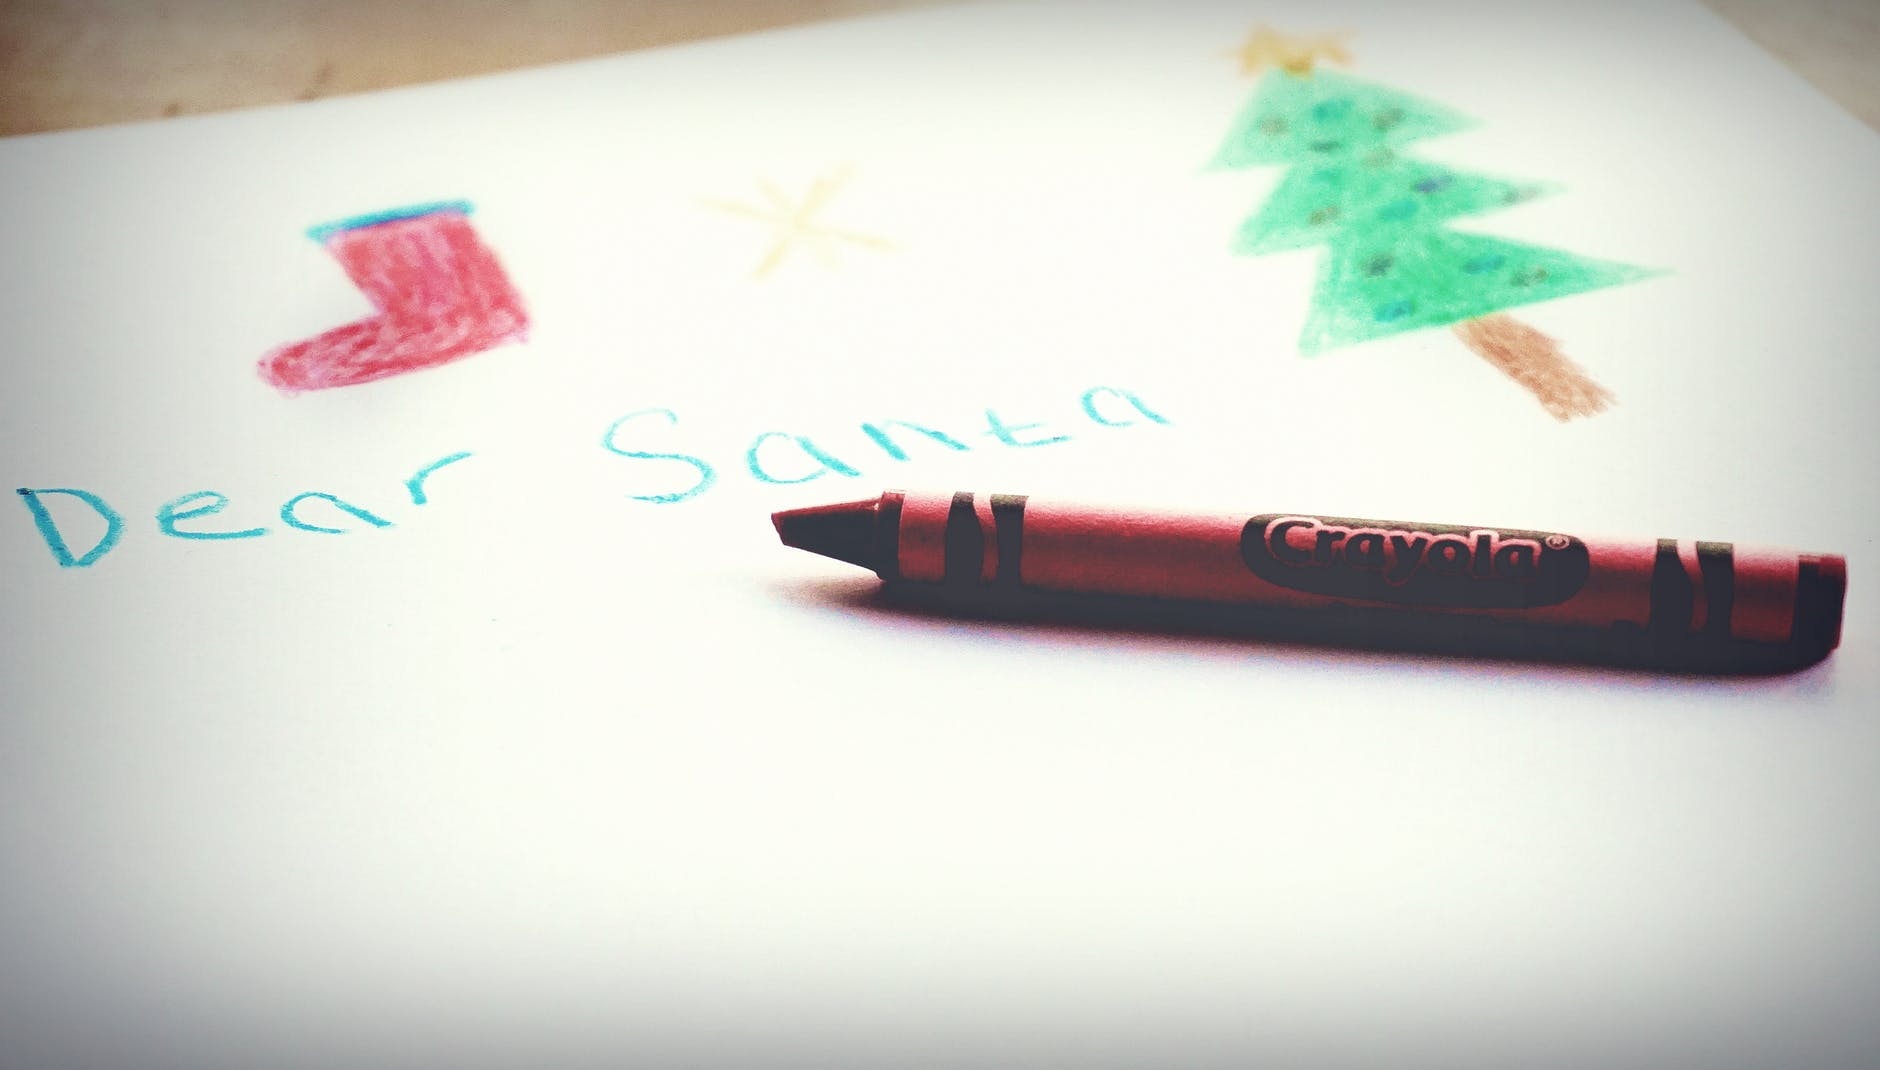 selective focus photography of red crayola crayon placed on white paper